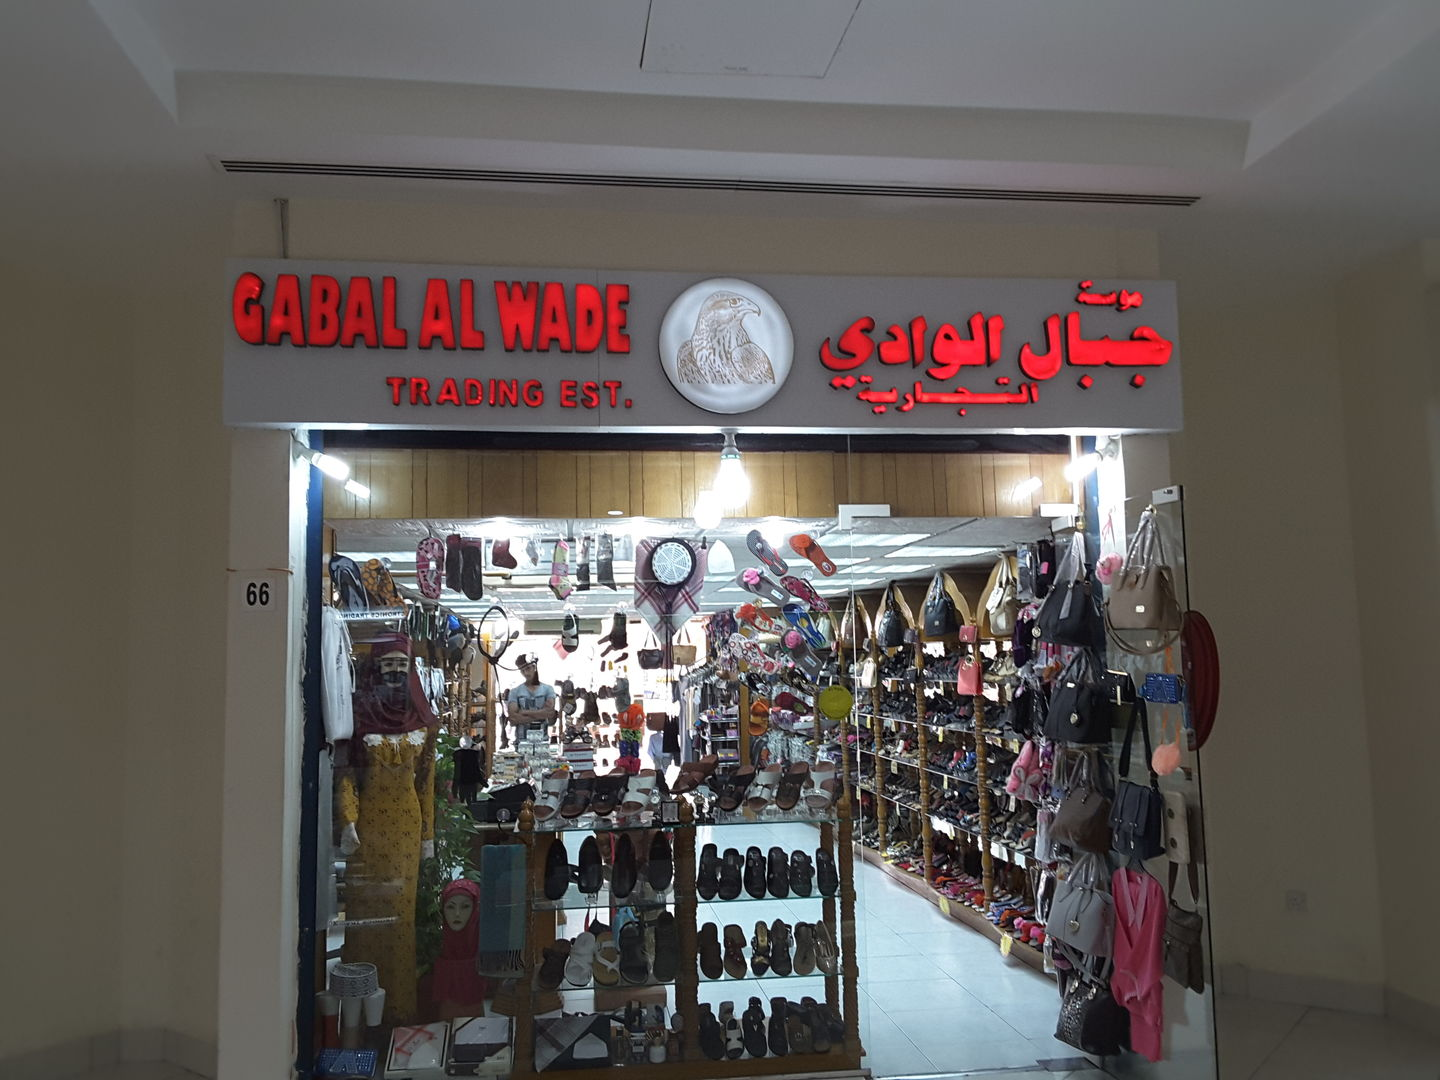 HiDubai-business-gabal-al-wade-trading-shopping-footwear-al-wuheida-dubai-2